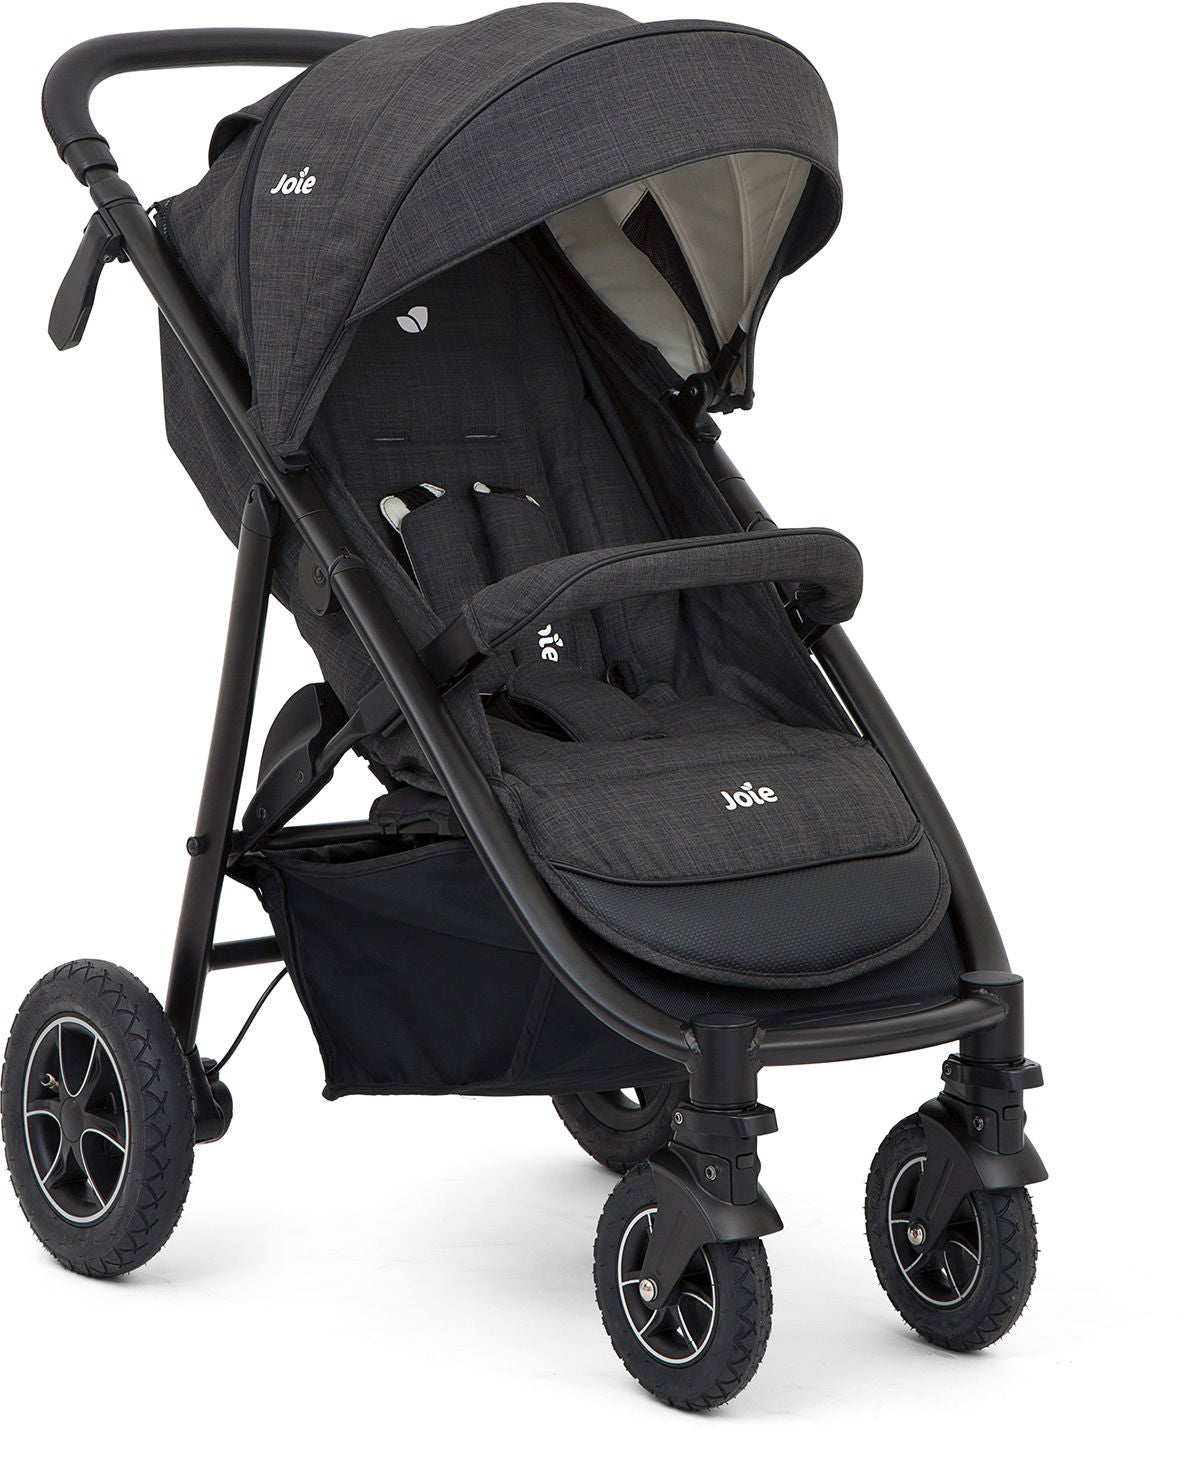 Joie Mytrax Flex Sulky, Pavement